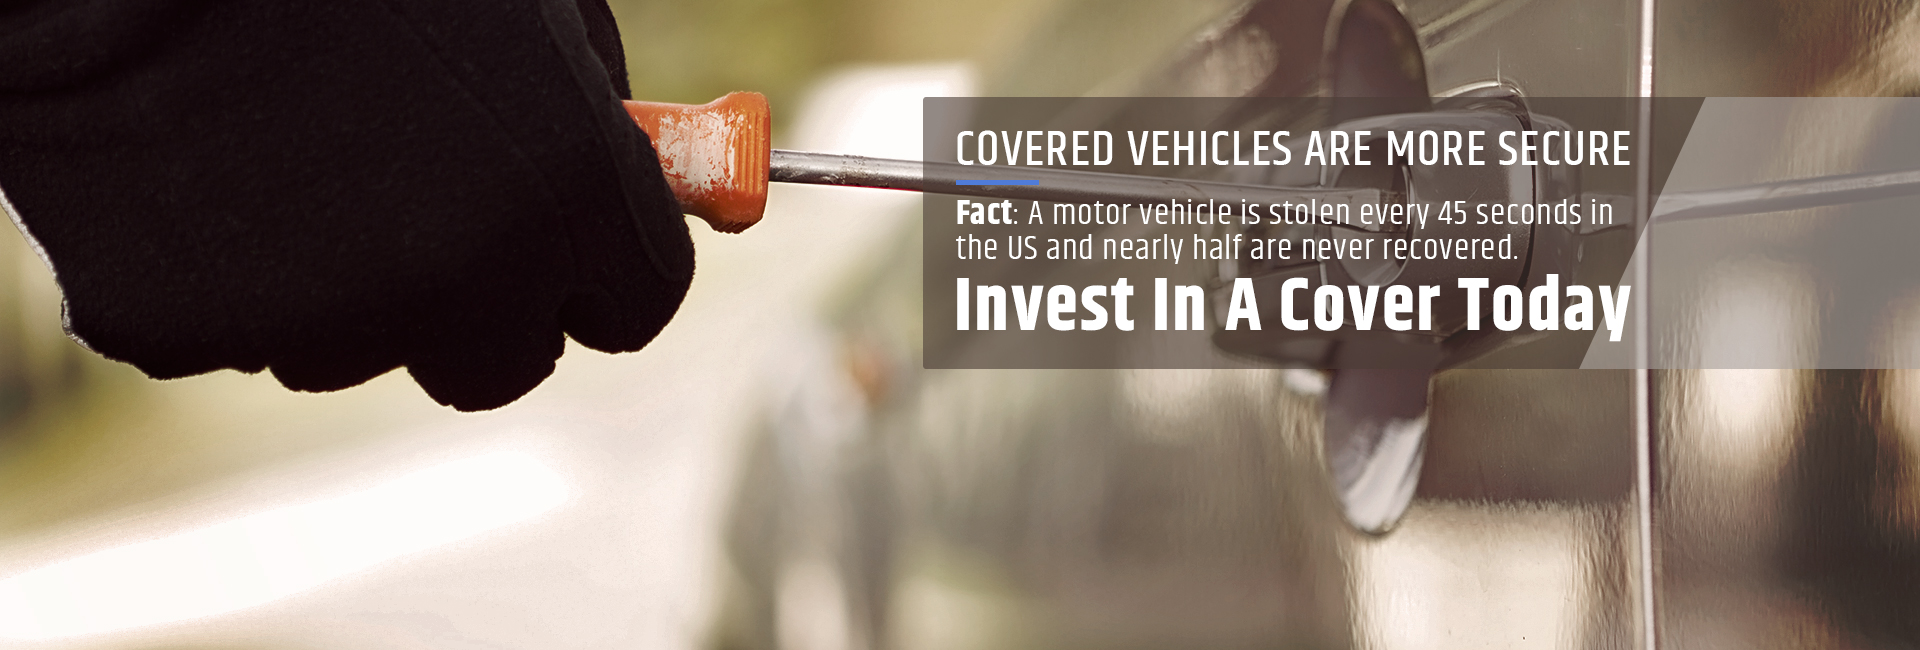 Covered vehicles are more safe